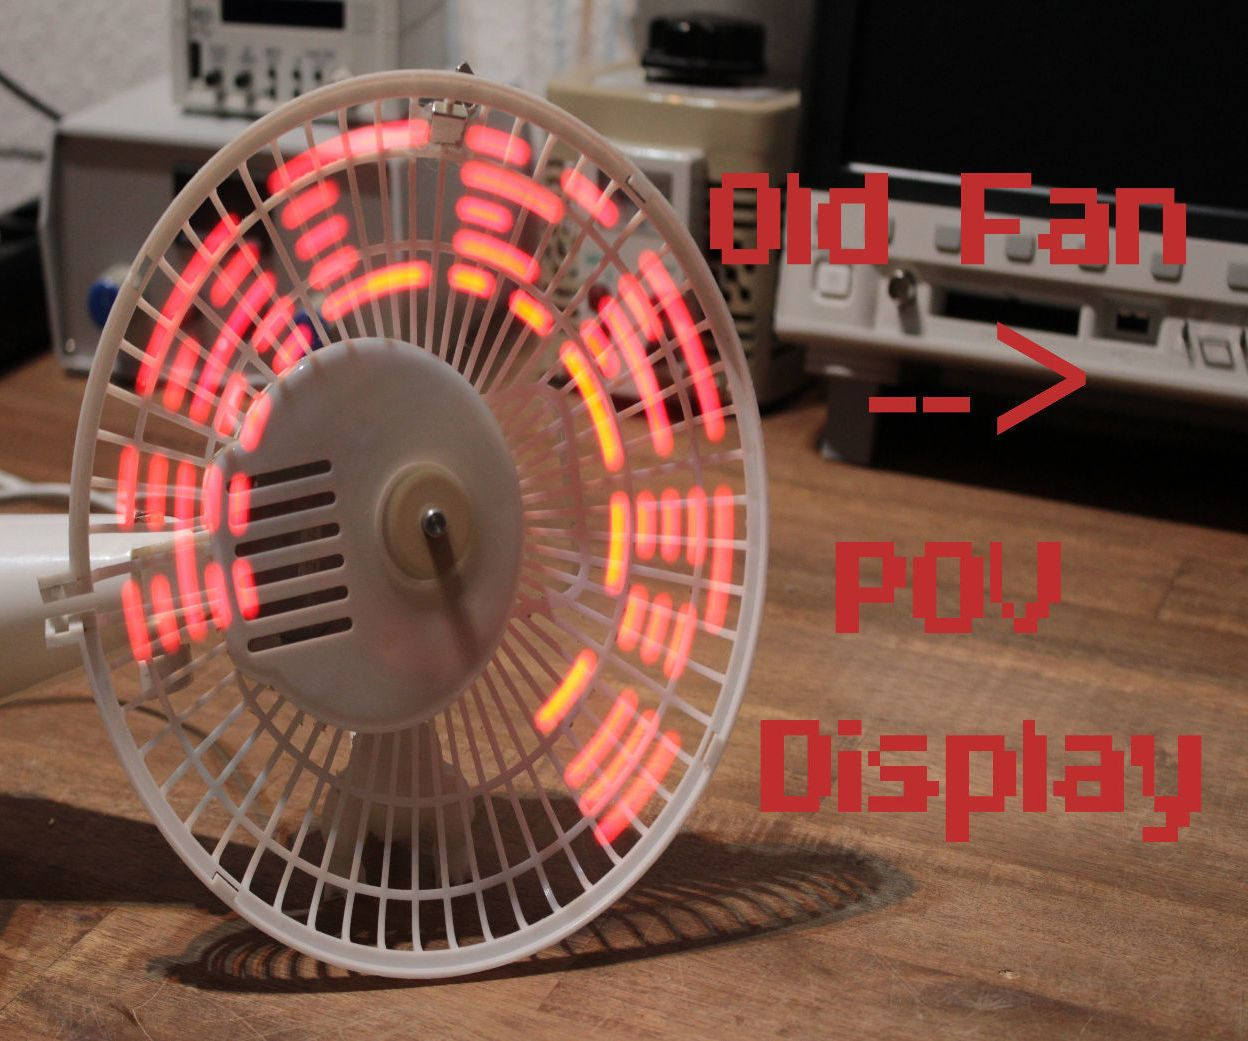 How To Make A Fan Pov Display Liitin Open Source Diy Projects Interface Microcontrollers At89c2051 And At894051 We Keep The Circuit In This Project I Will Show You Transformed An Ordinary Old Into Led Which Can Present Light Patterns Words Or Even Time